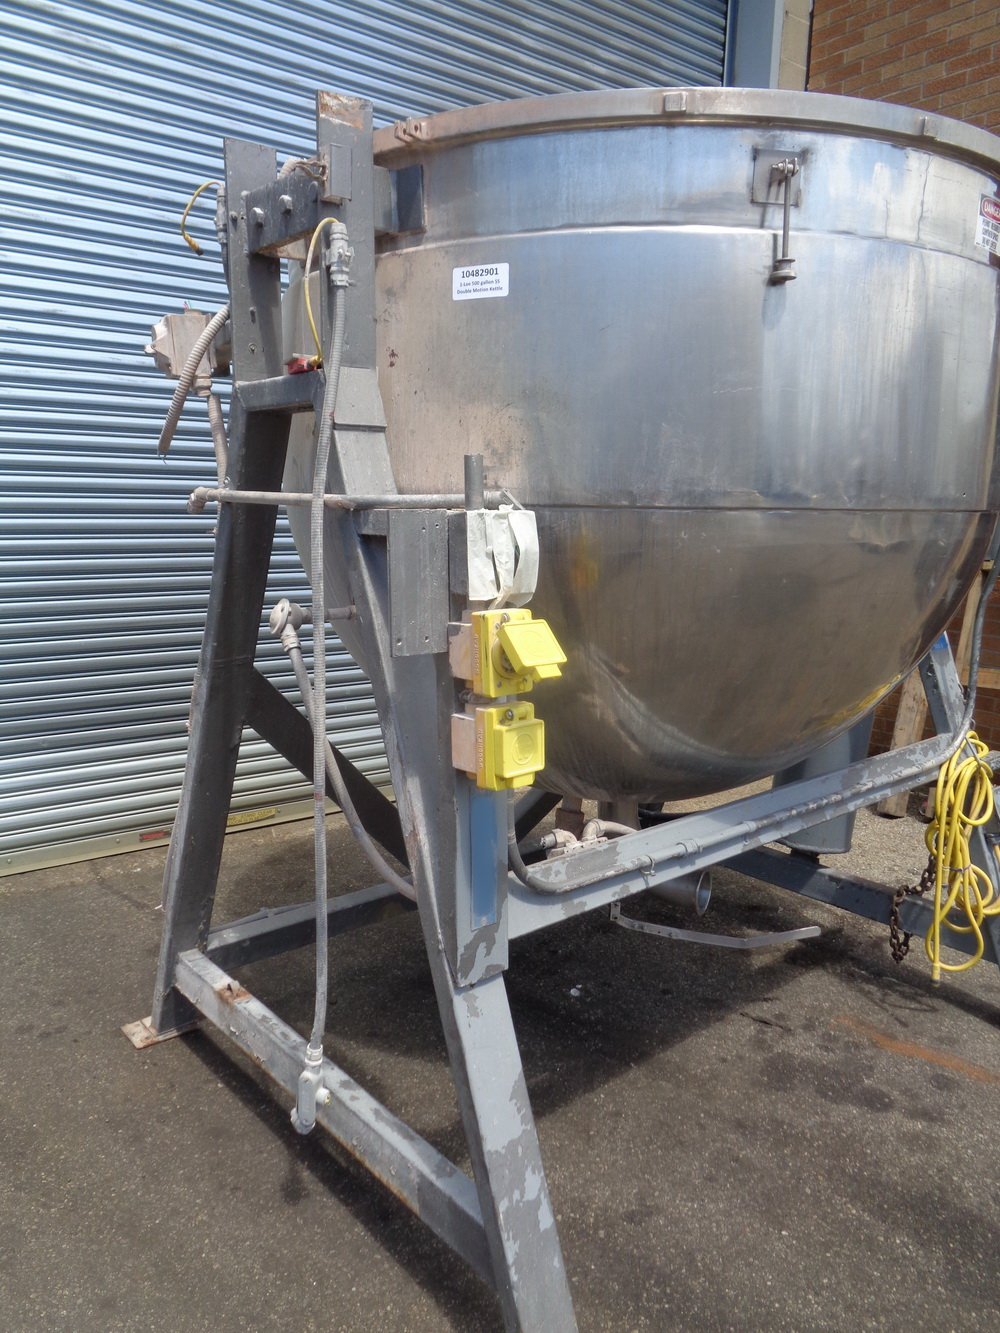 Lee 500 gallon Stainless Steel Double Motion Scraper Jacketed Kettle, Model 500DV9MT - Image 4 of 14